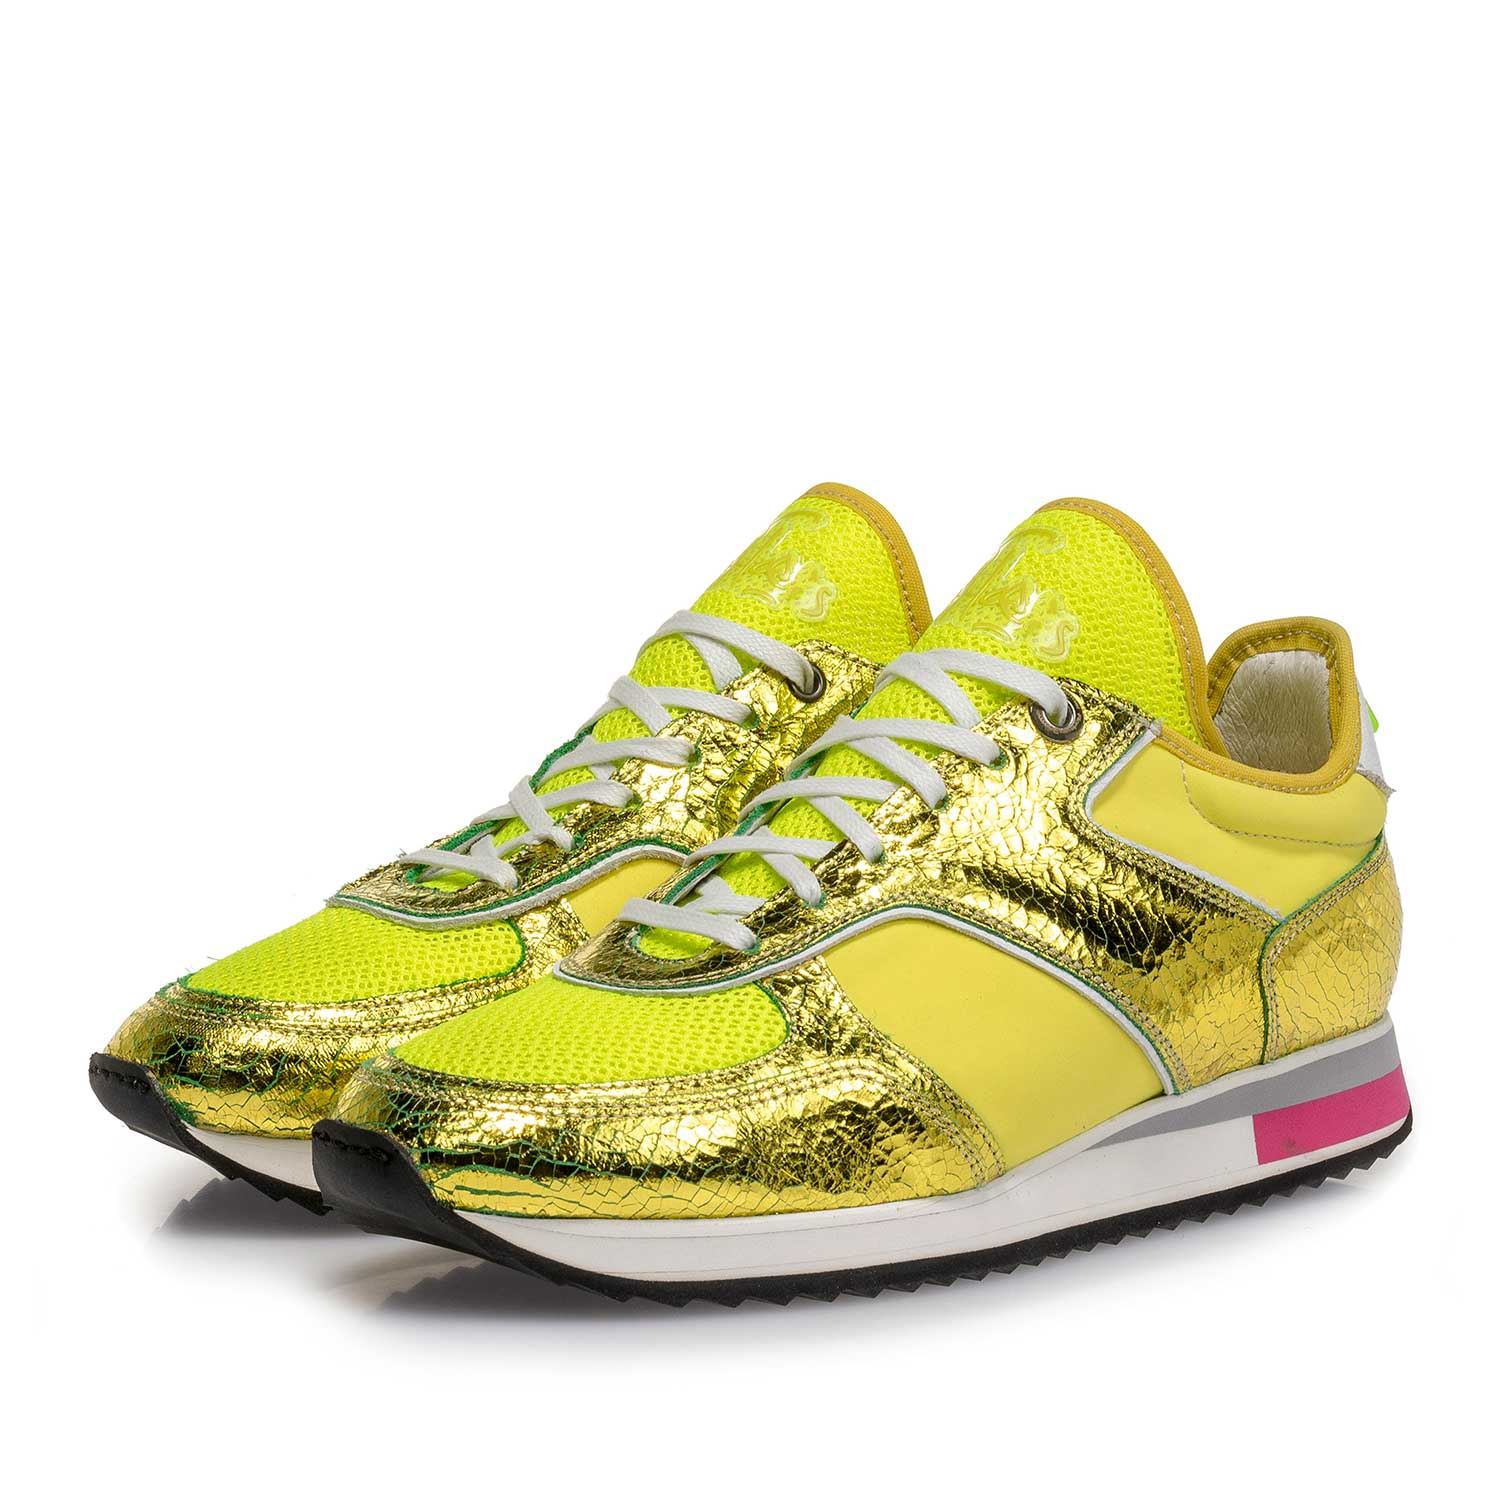 85261/01 - Yellow metallic leather sneaker with changing effect